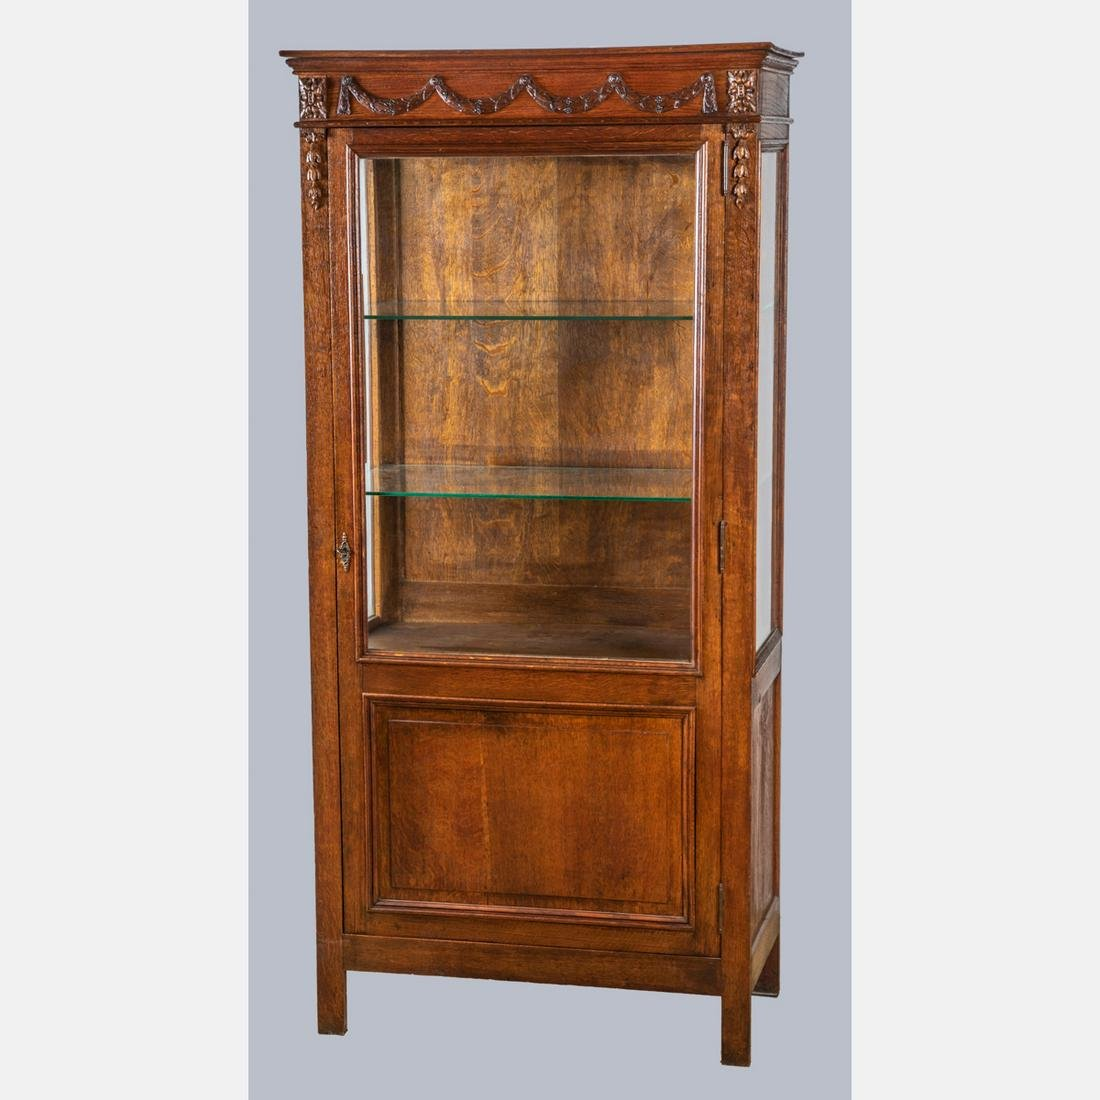 An American Oak and Glass Apothecary Cabinet, 19th/20th